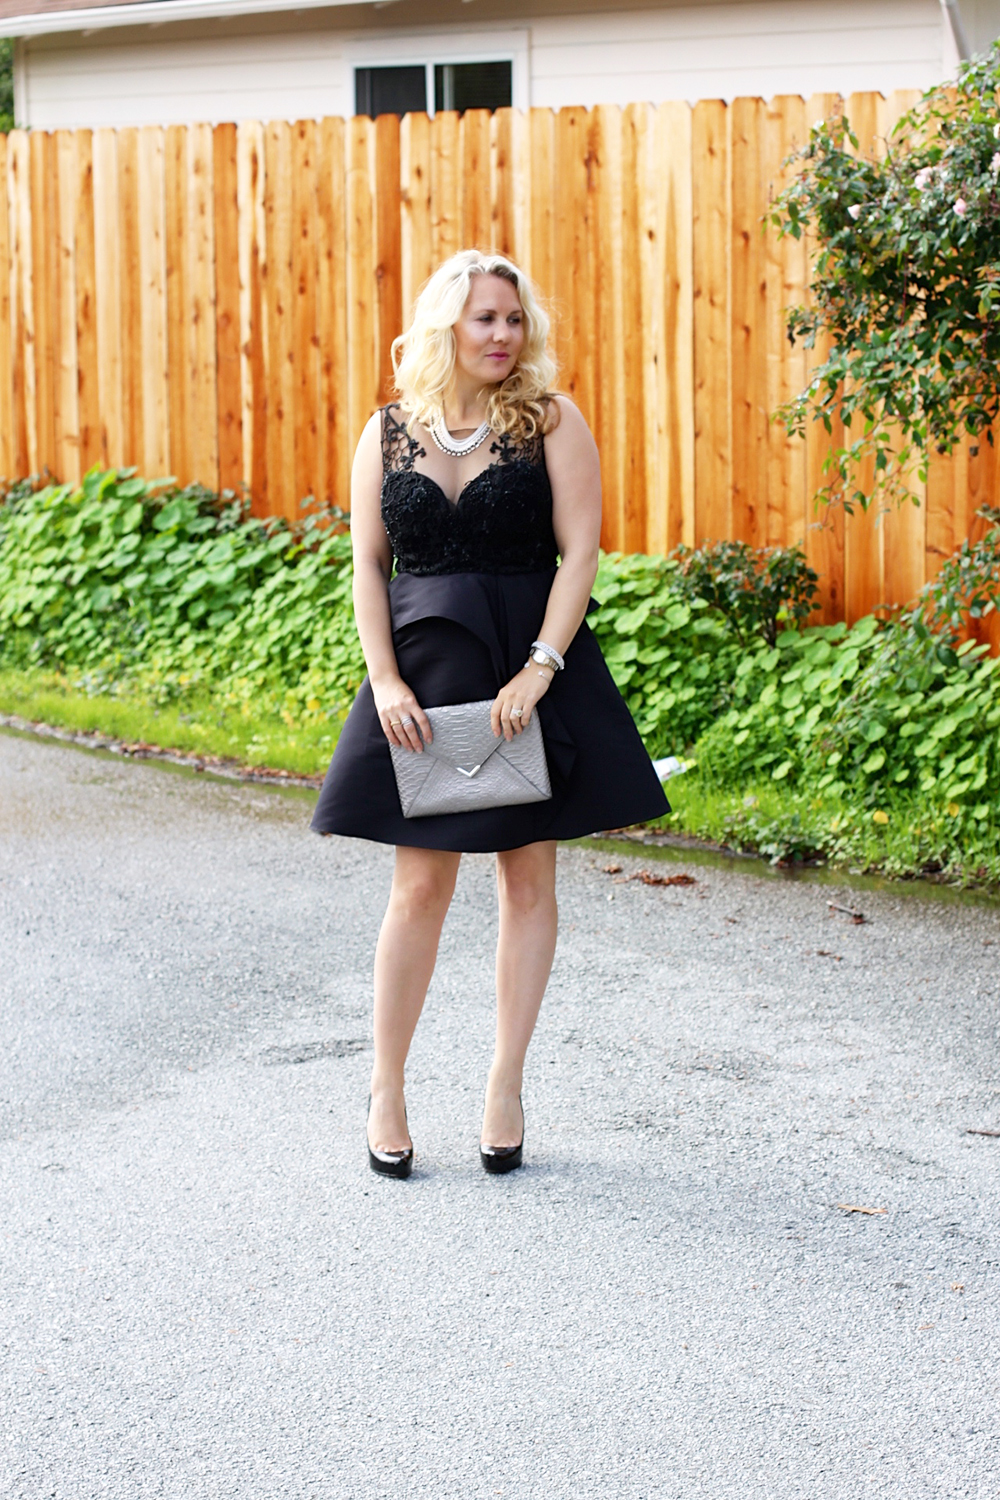 warmest-wishes-this-holiday-season-have-need-want-holiday-style-lbd-outfit-inspiration-10